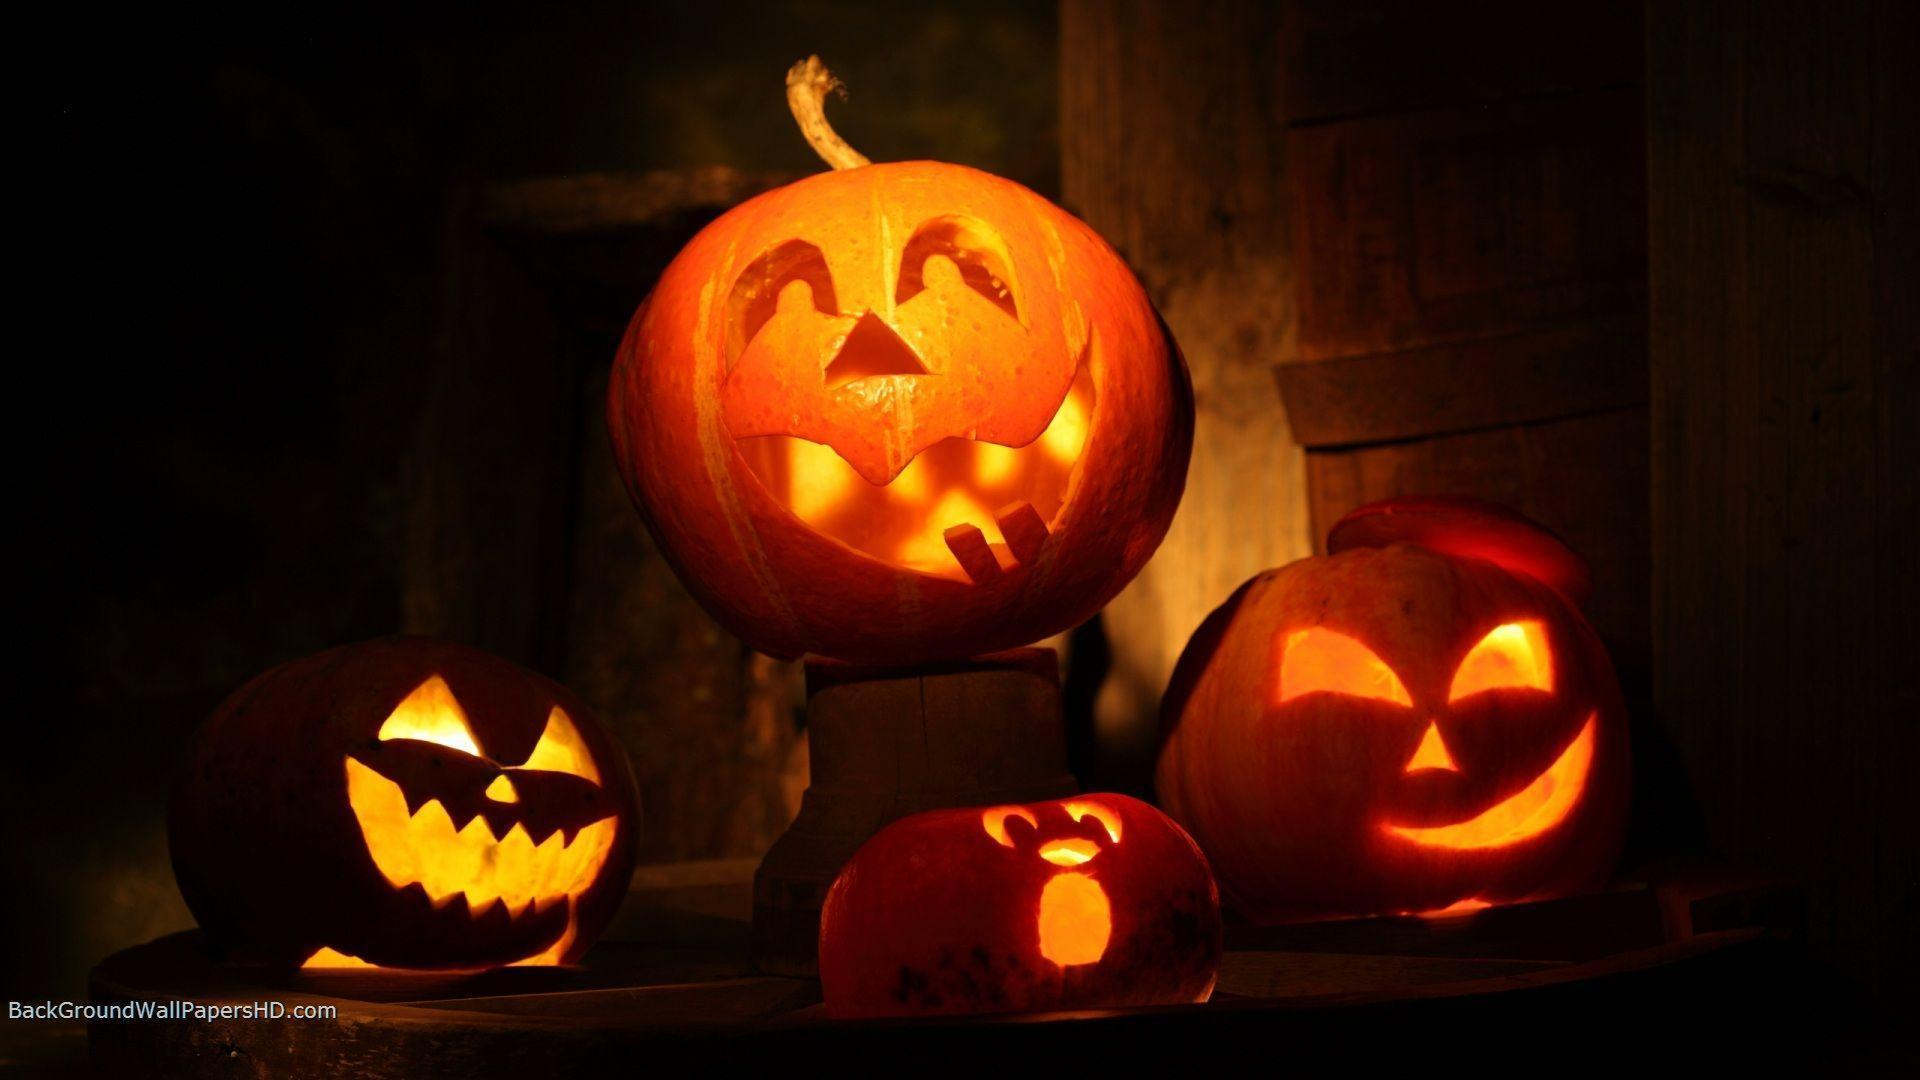 Scary Halloween Wallpaper Backgrounds HD Wallpapers Pictures | HD ...